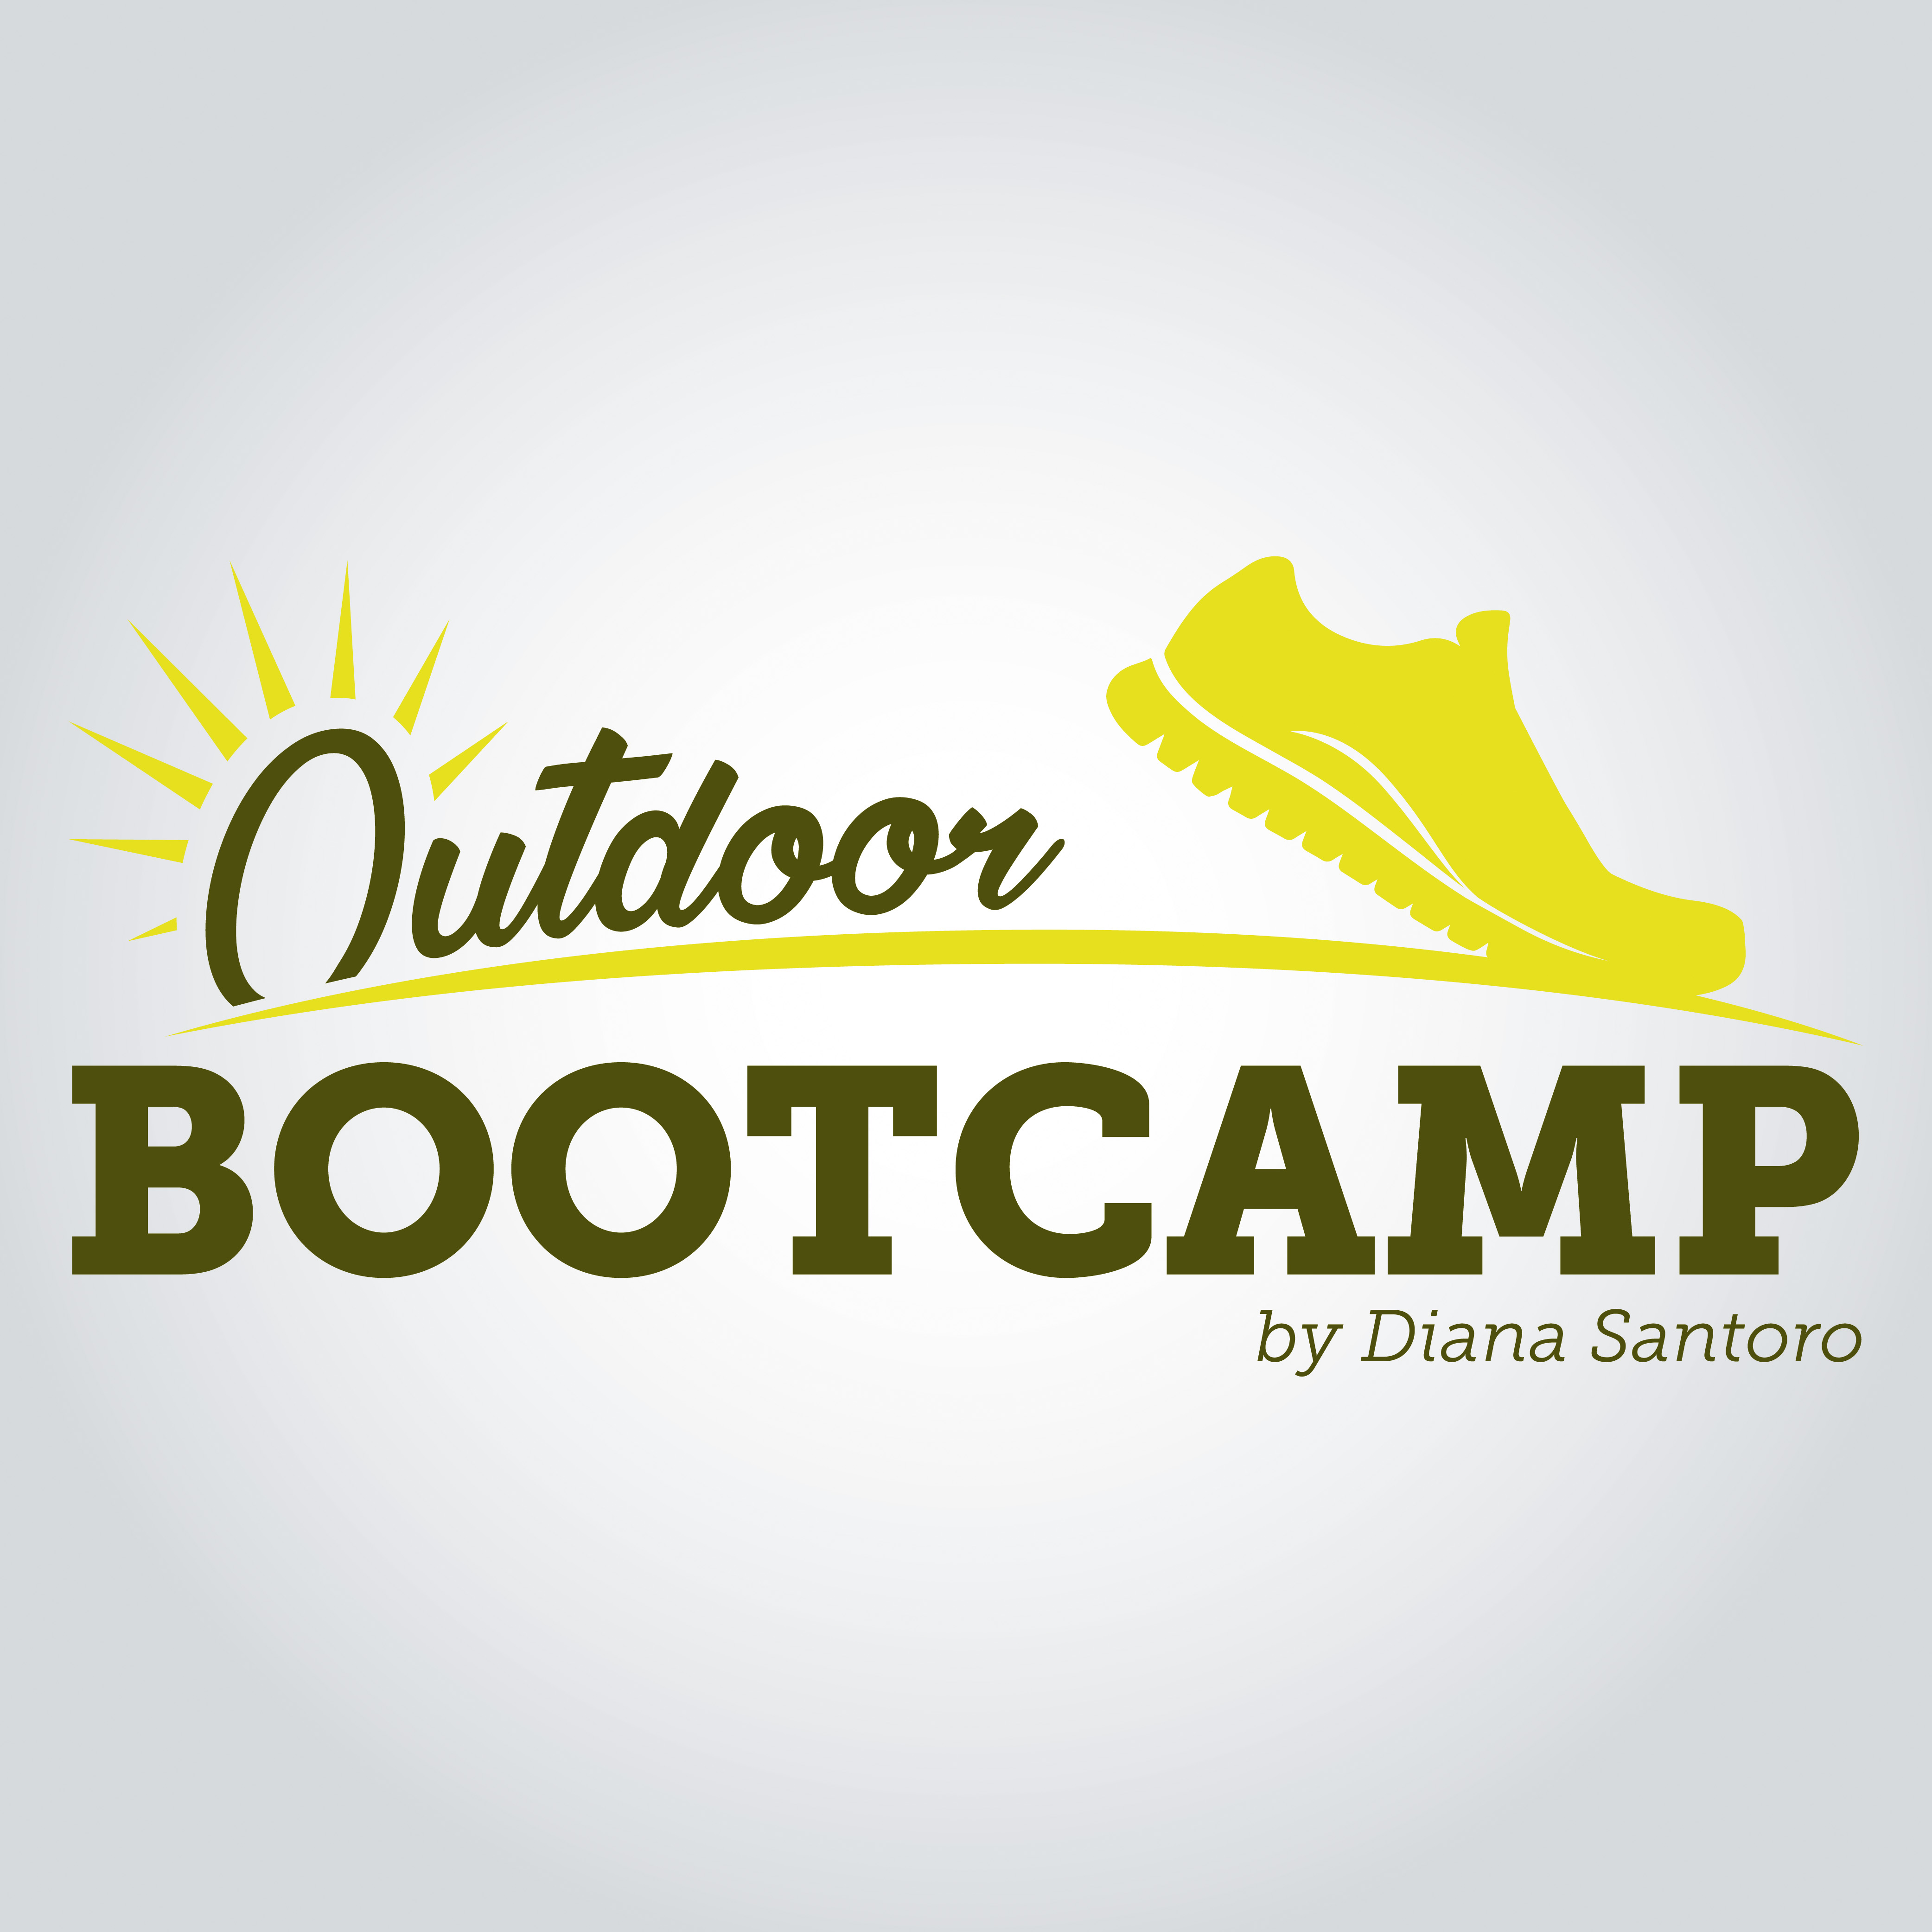 Outdoor Bootcamp Logo